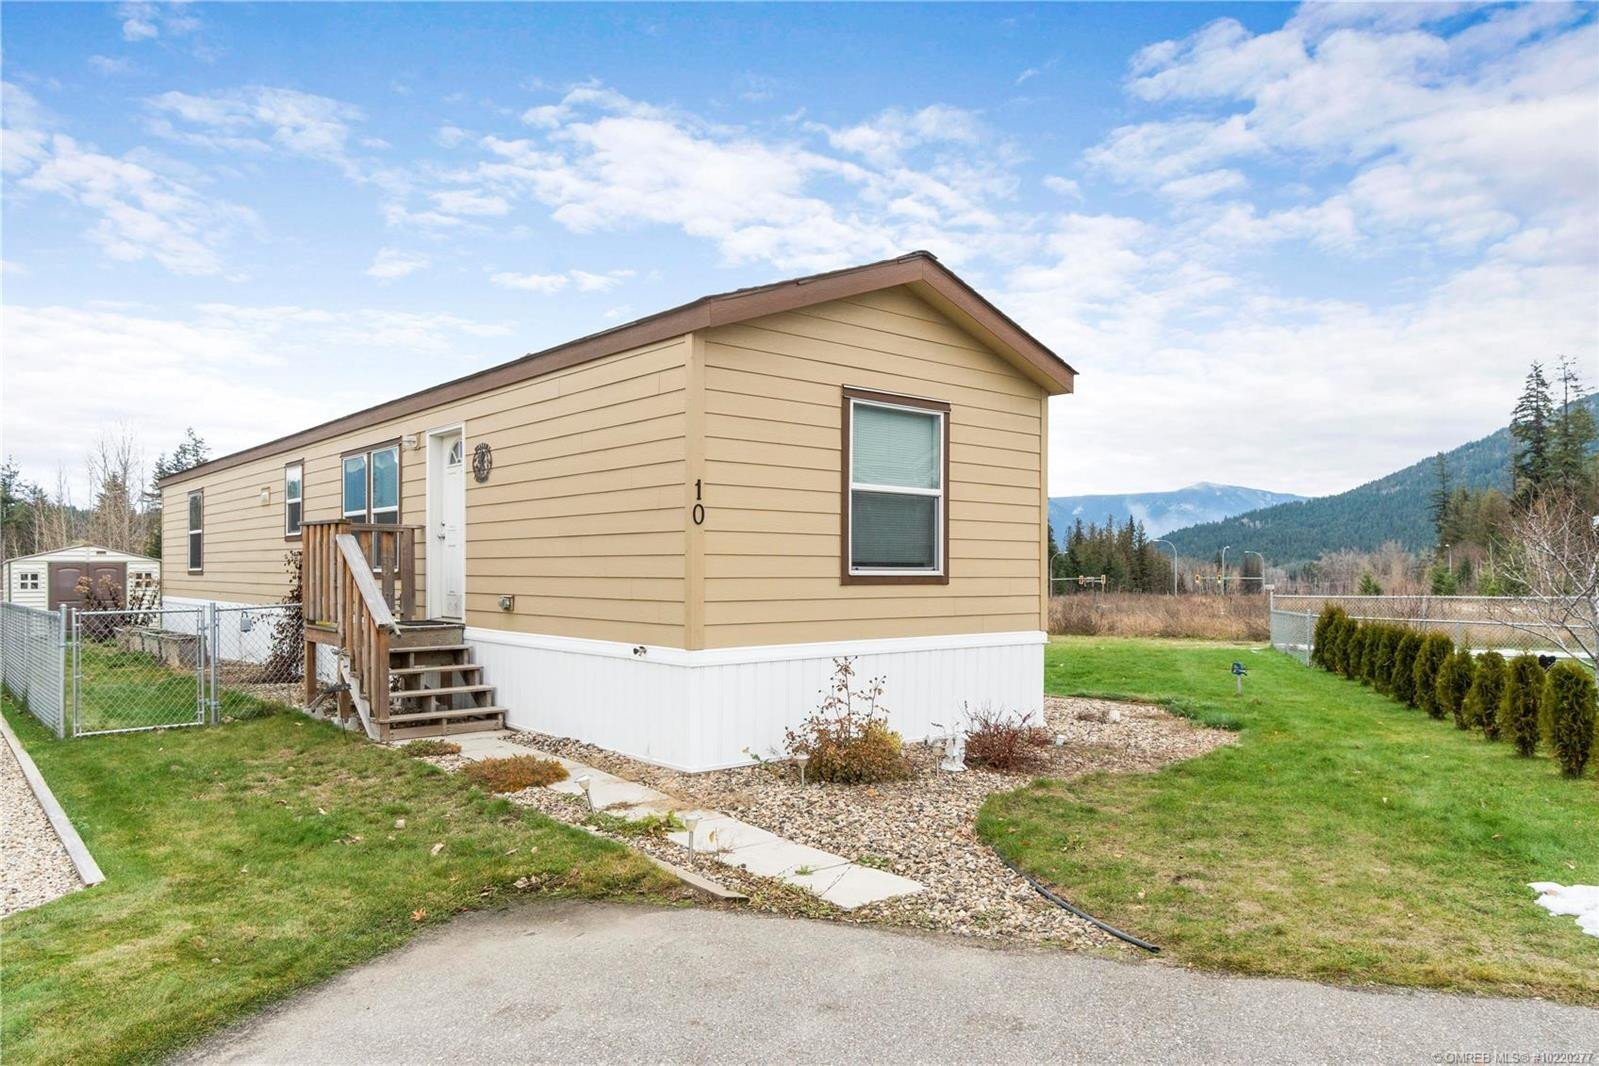 Home for sale at 4811 10a Ave Northeast Unit 10 Salmon Arm British Columbia - MLS: 10220277